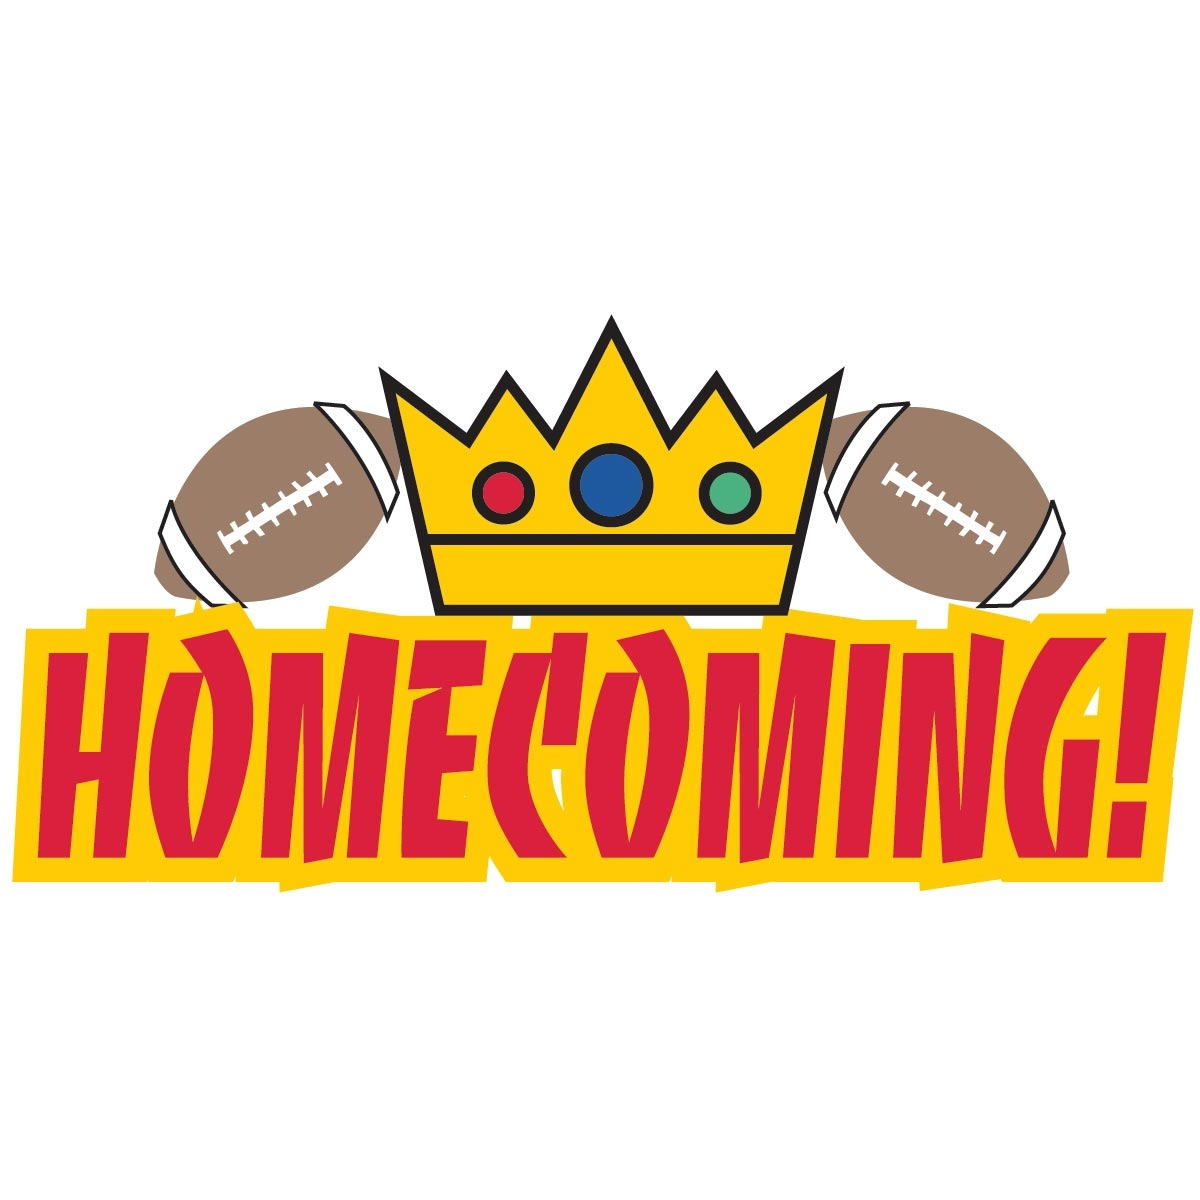 Homecoming clipart. New gallery digital collection